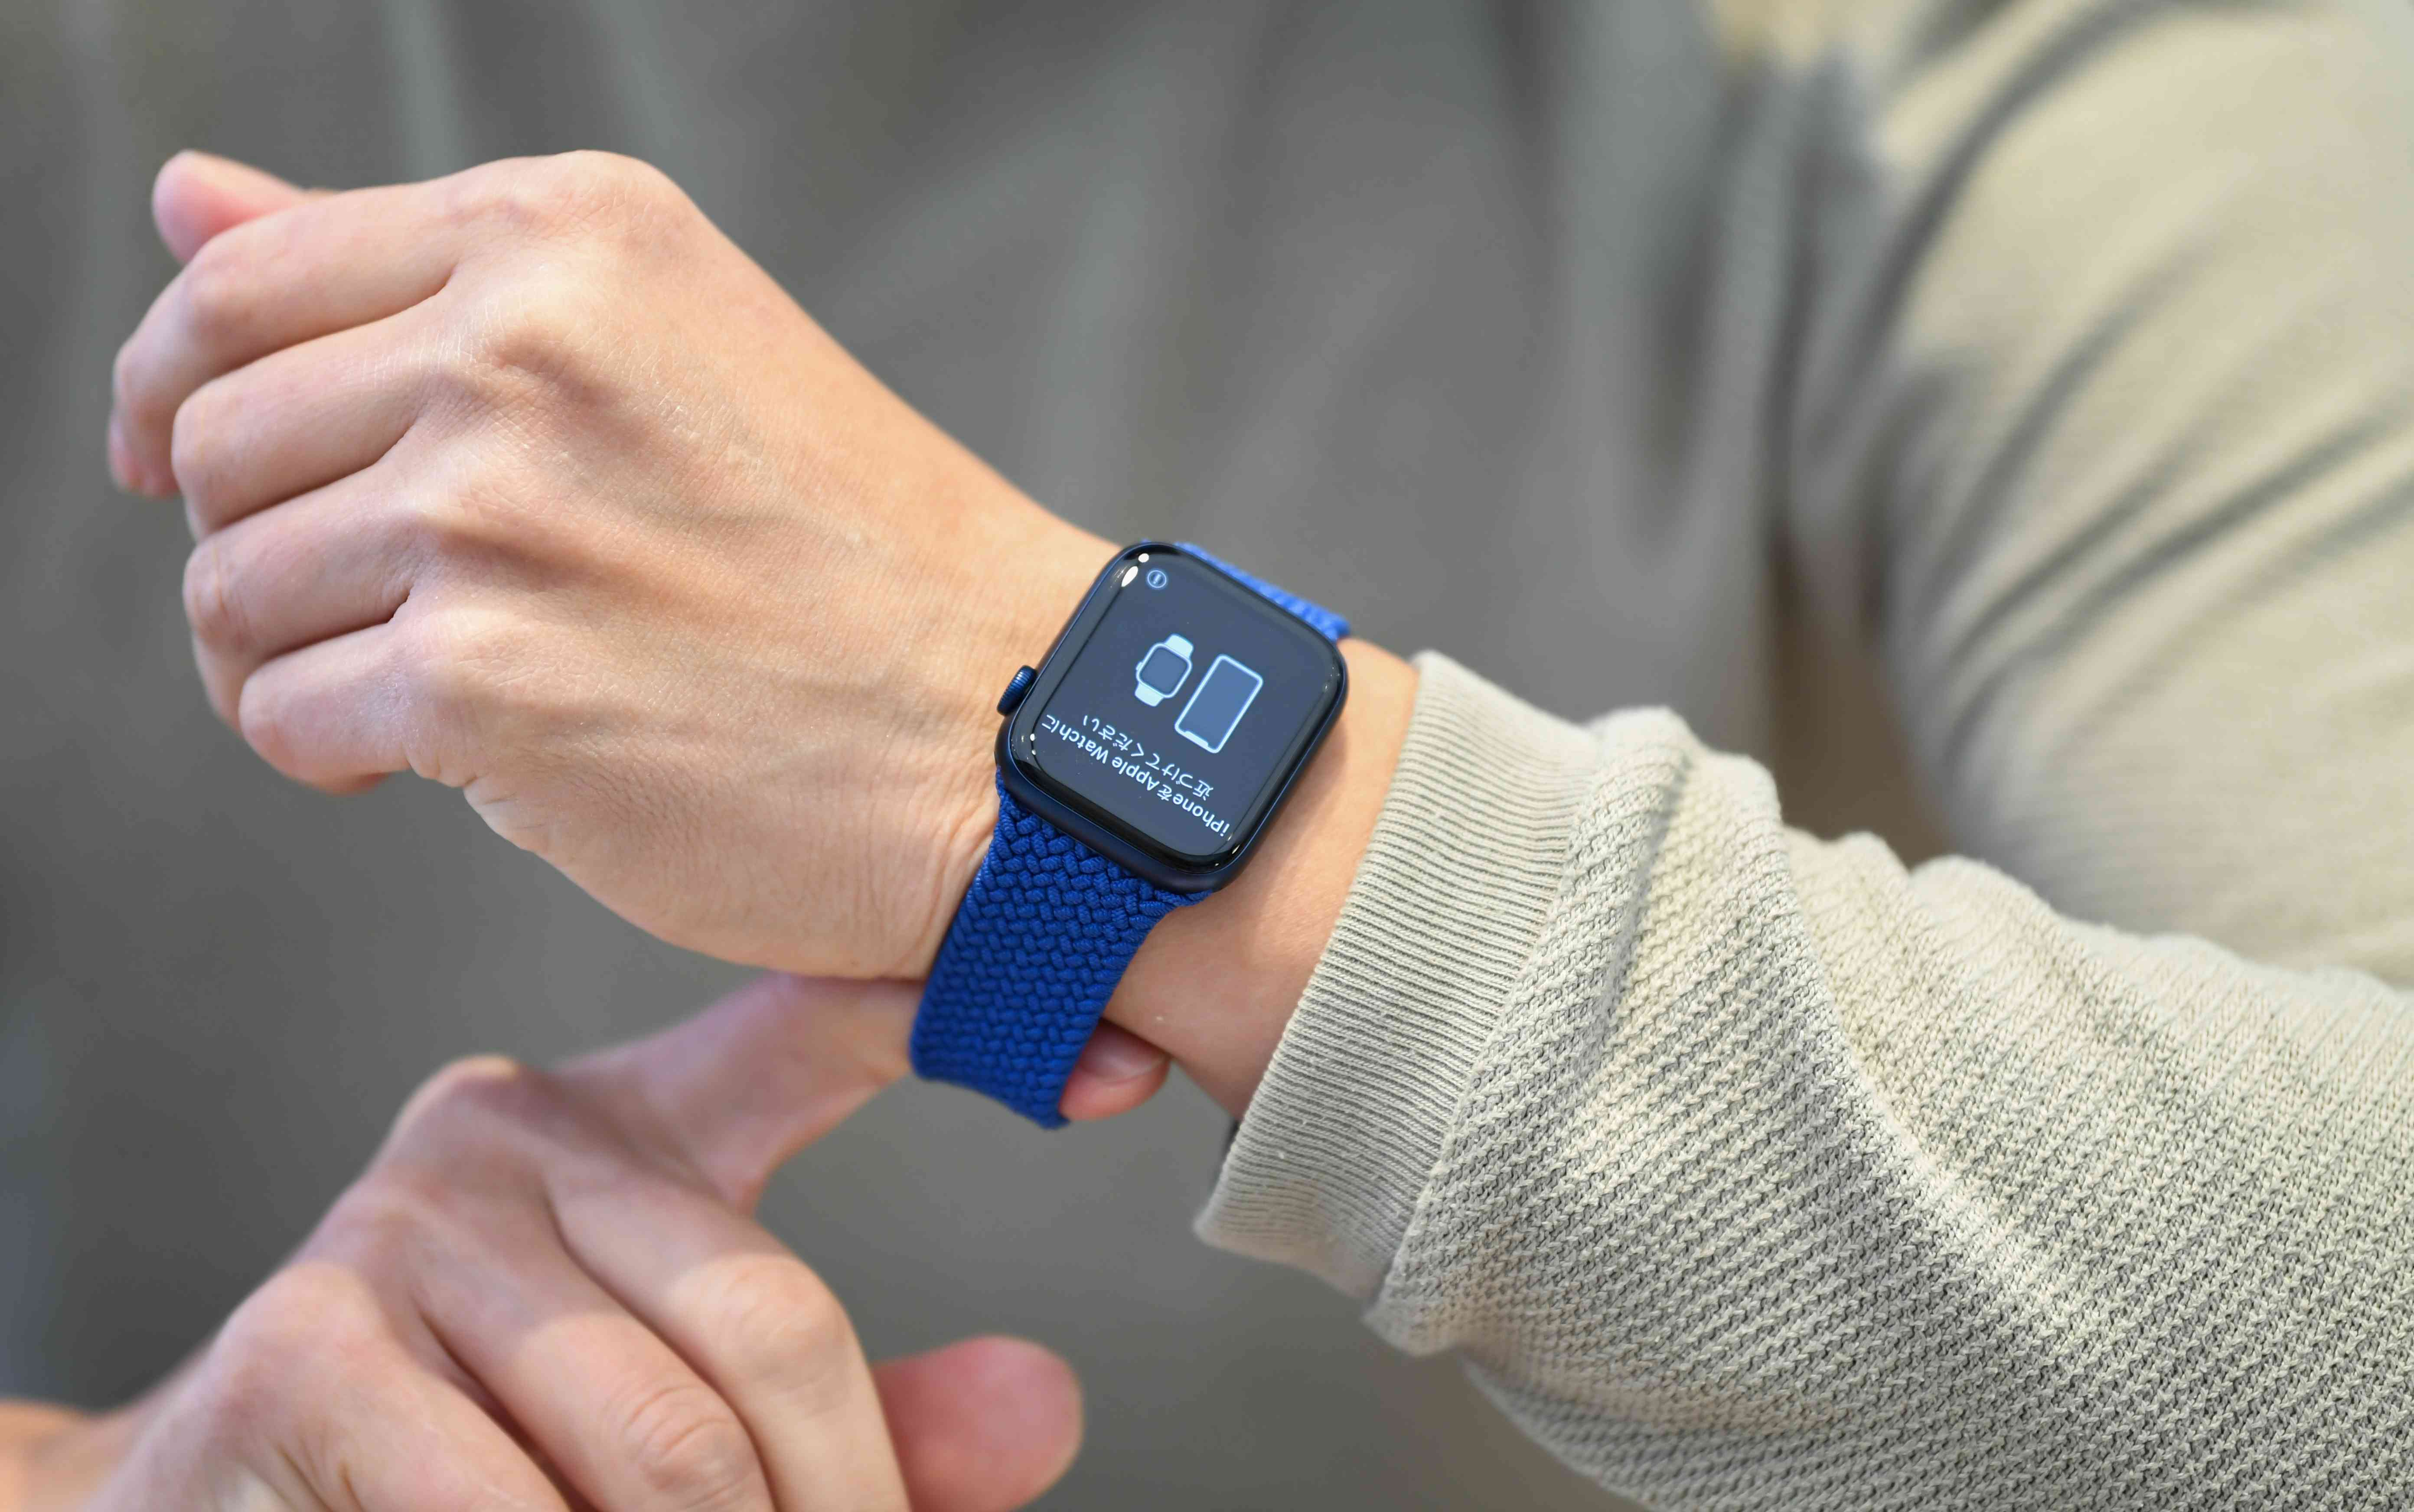 Apple Watch Series 6 with blue band on a wrist